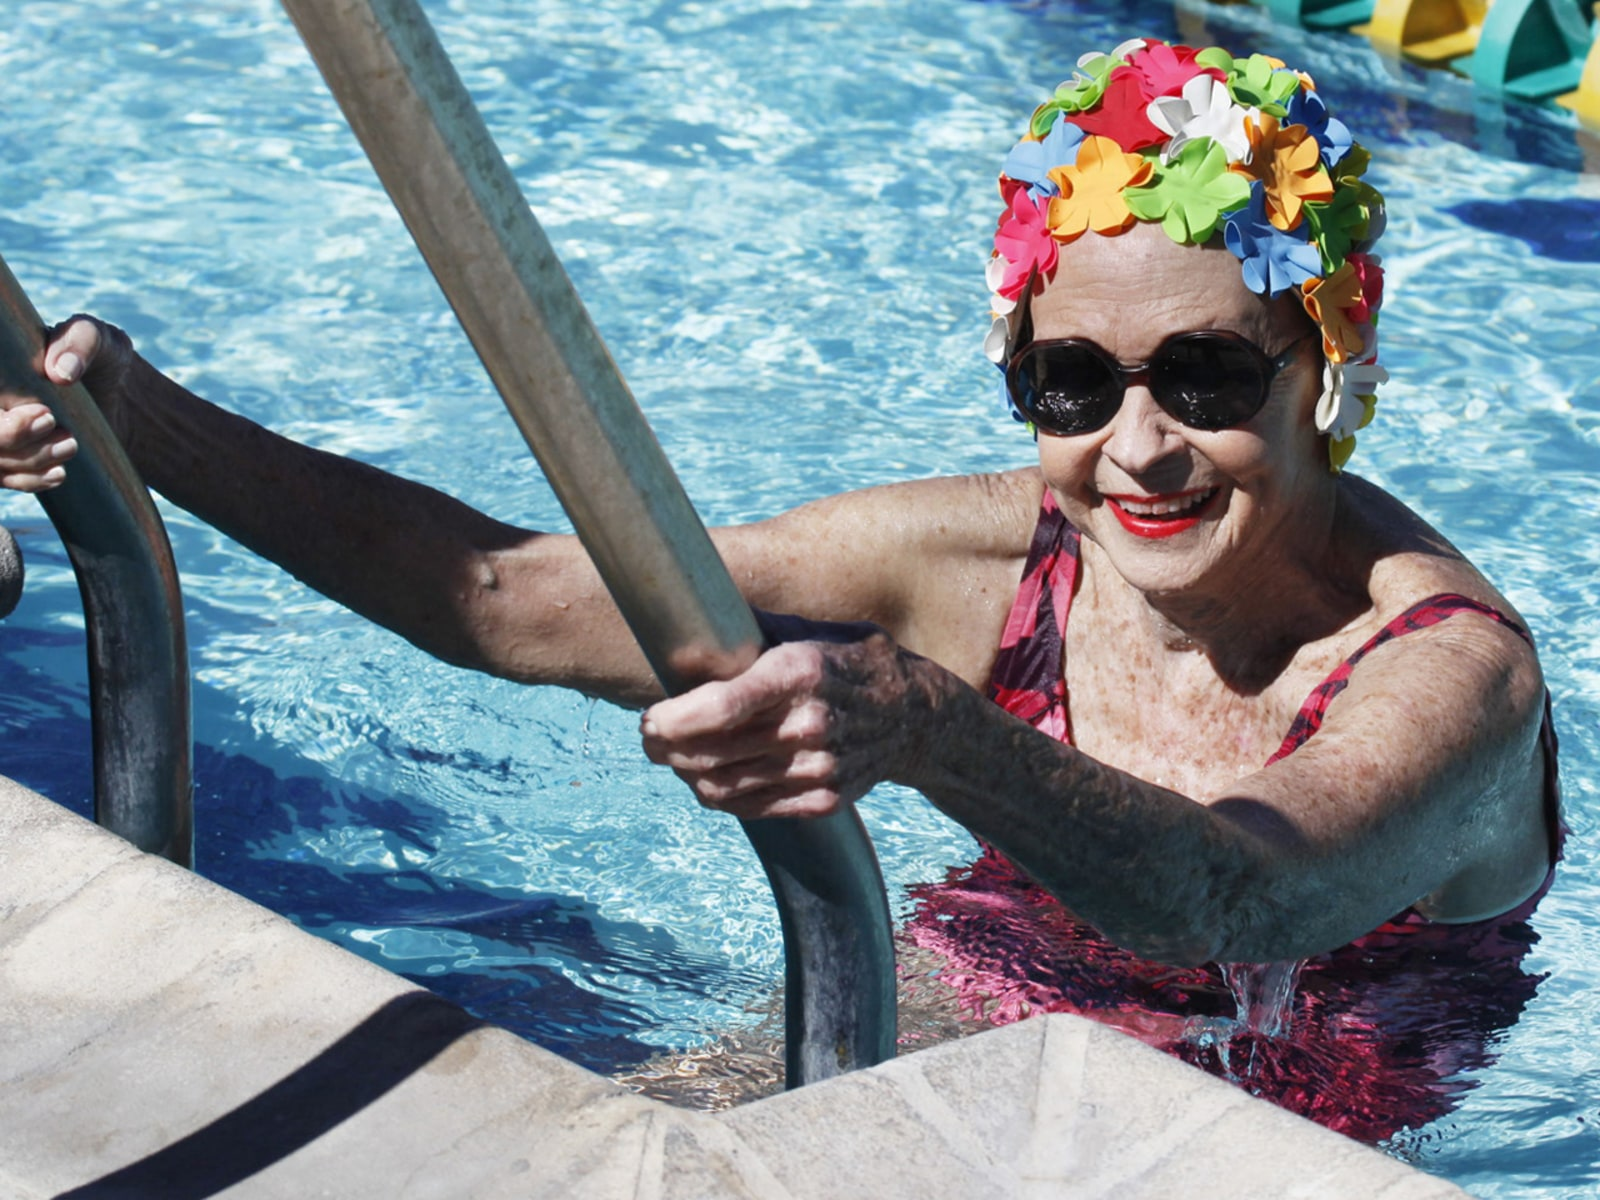 Image: Edith McAllister in swimming pool